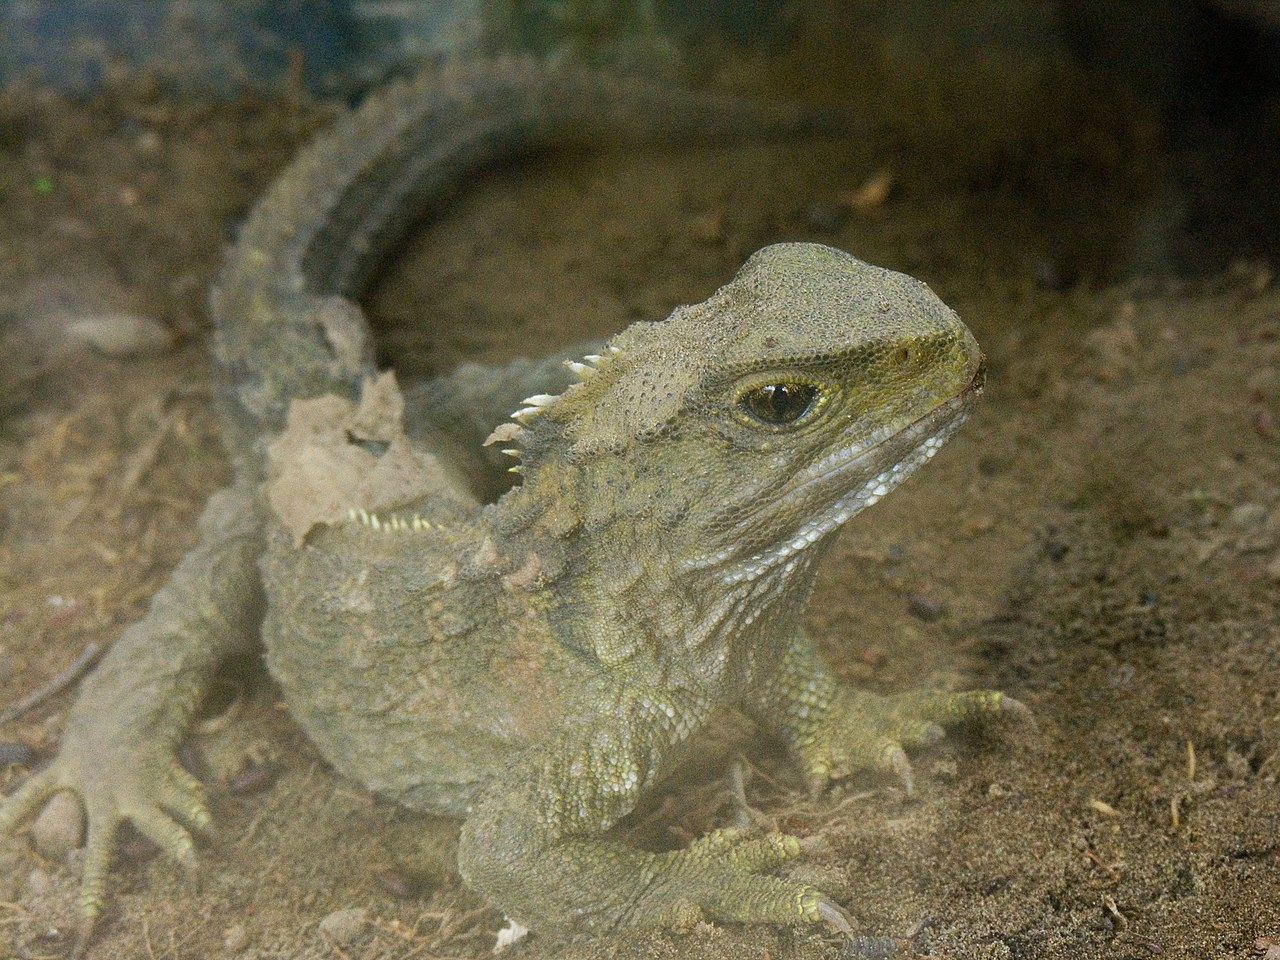 A Tuatara, in Waikanae, New Zealand - from Wikimedia Commons